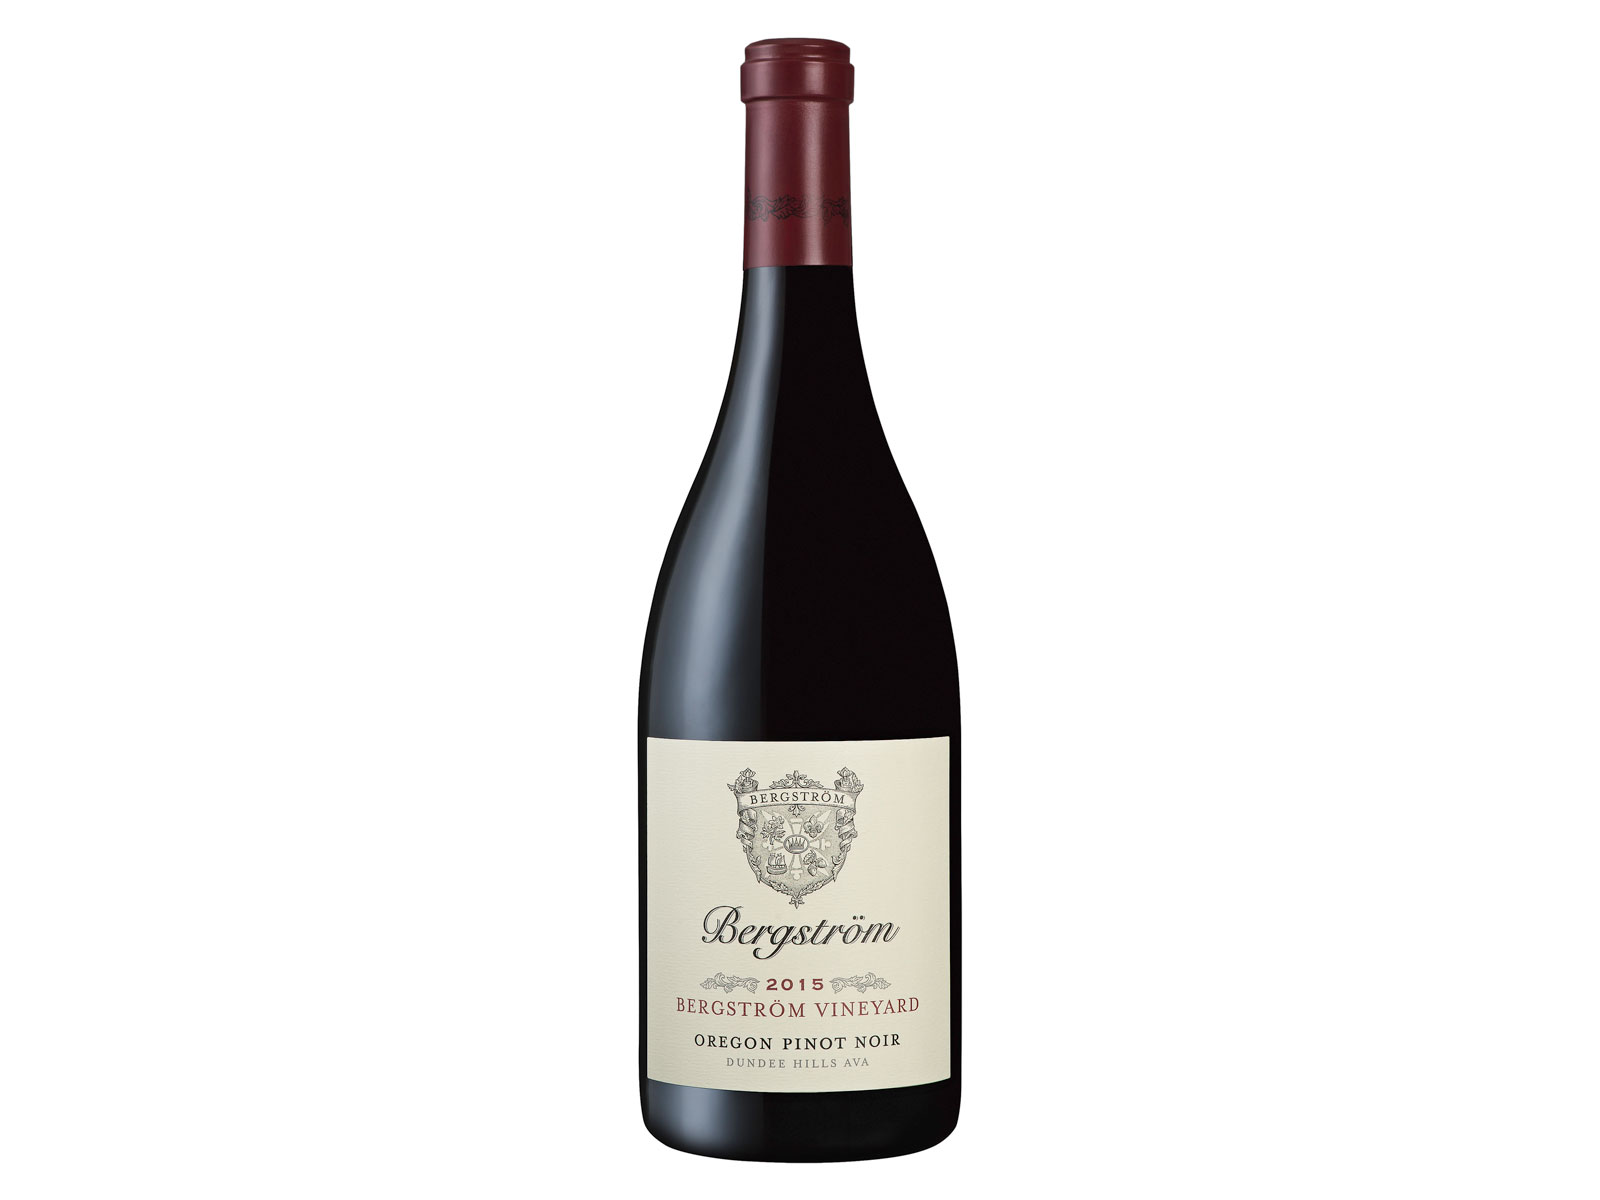 2015 Bergstrom Gregory Ranch Pinot Noir